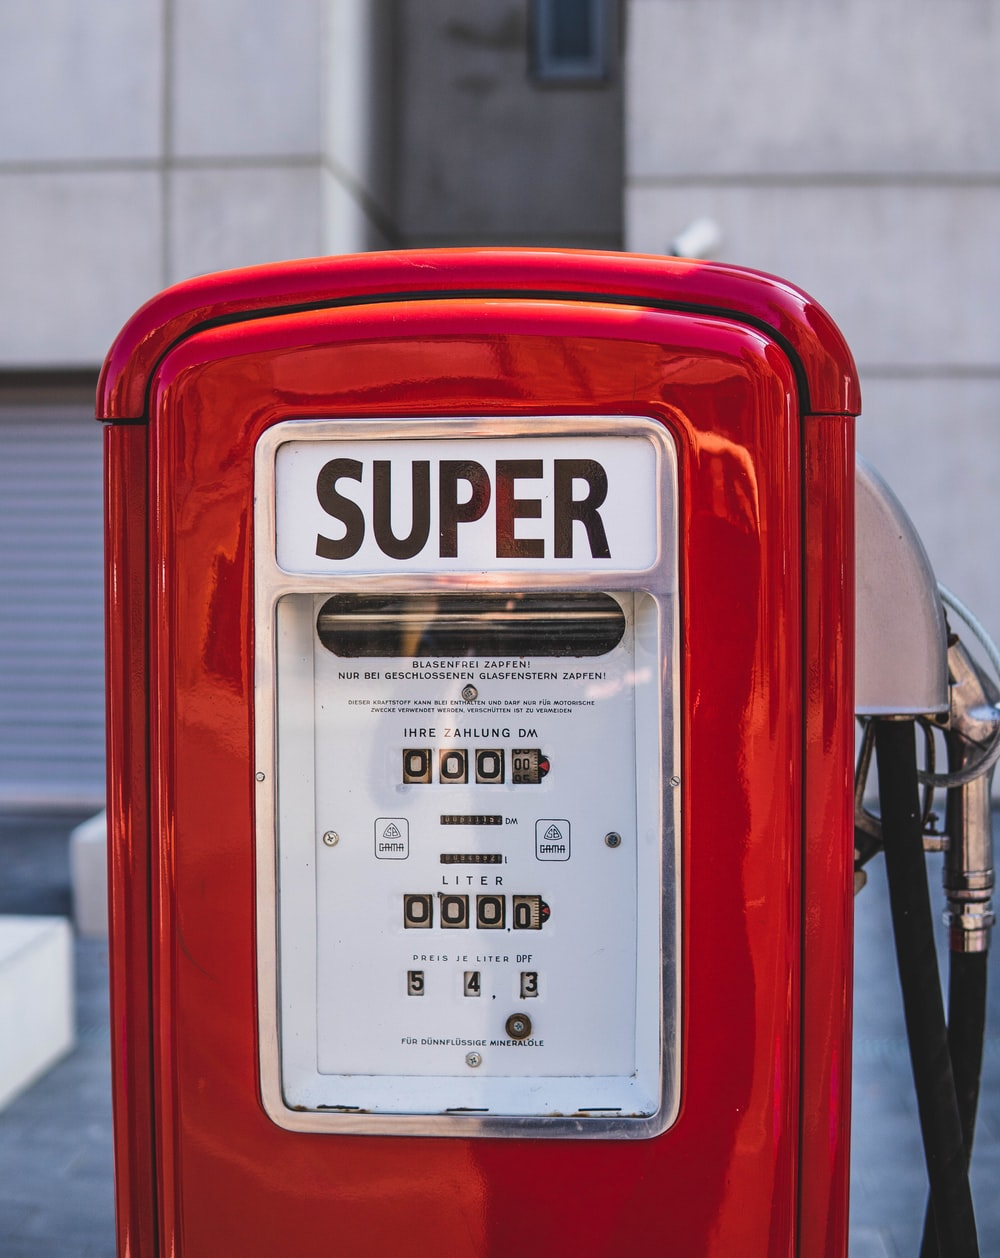 red and white Super gas dispenser